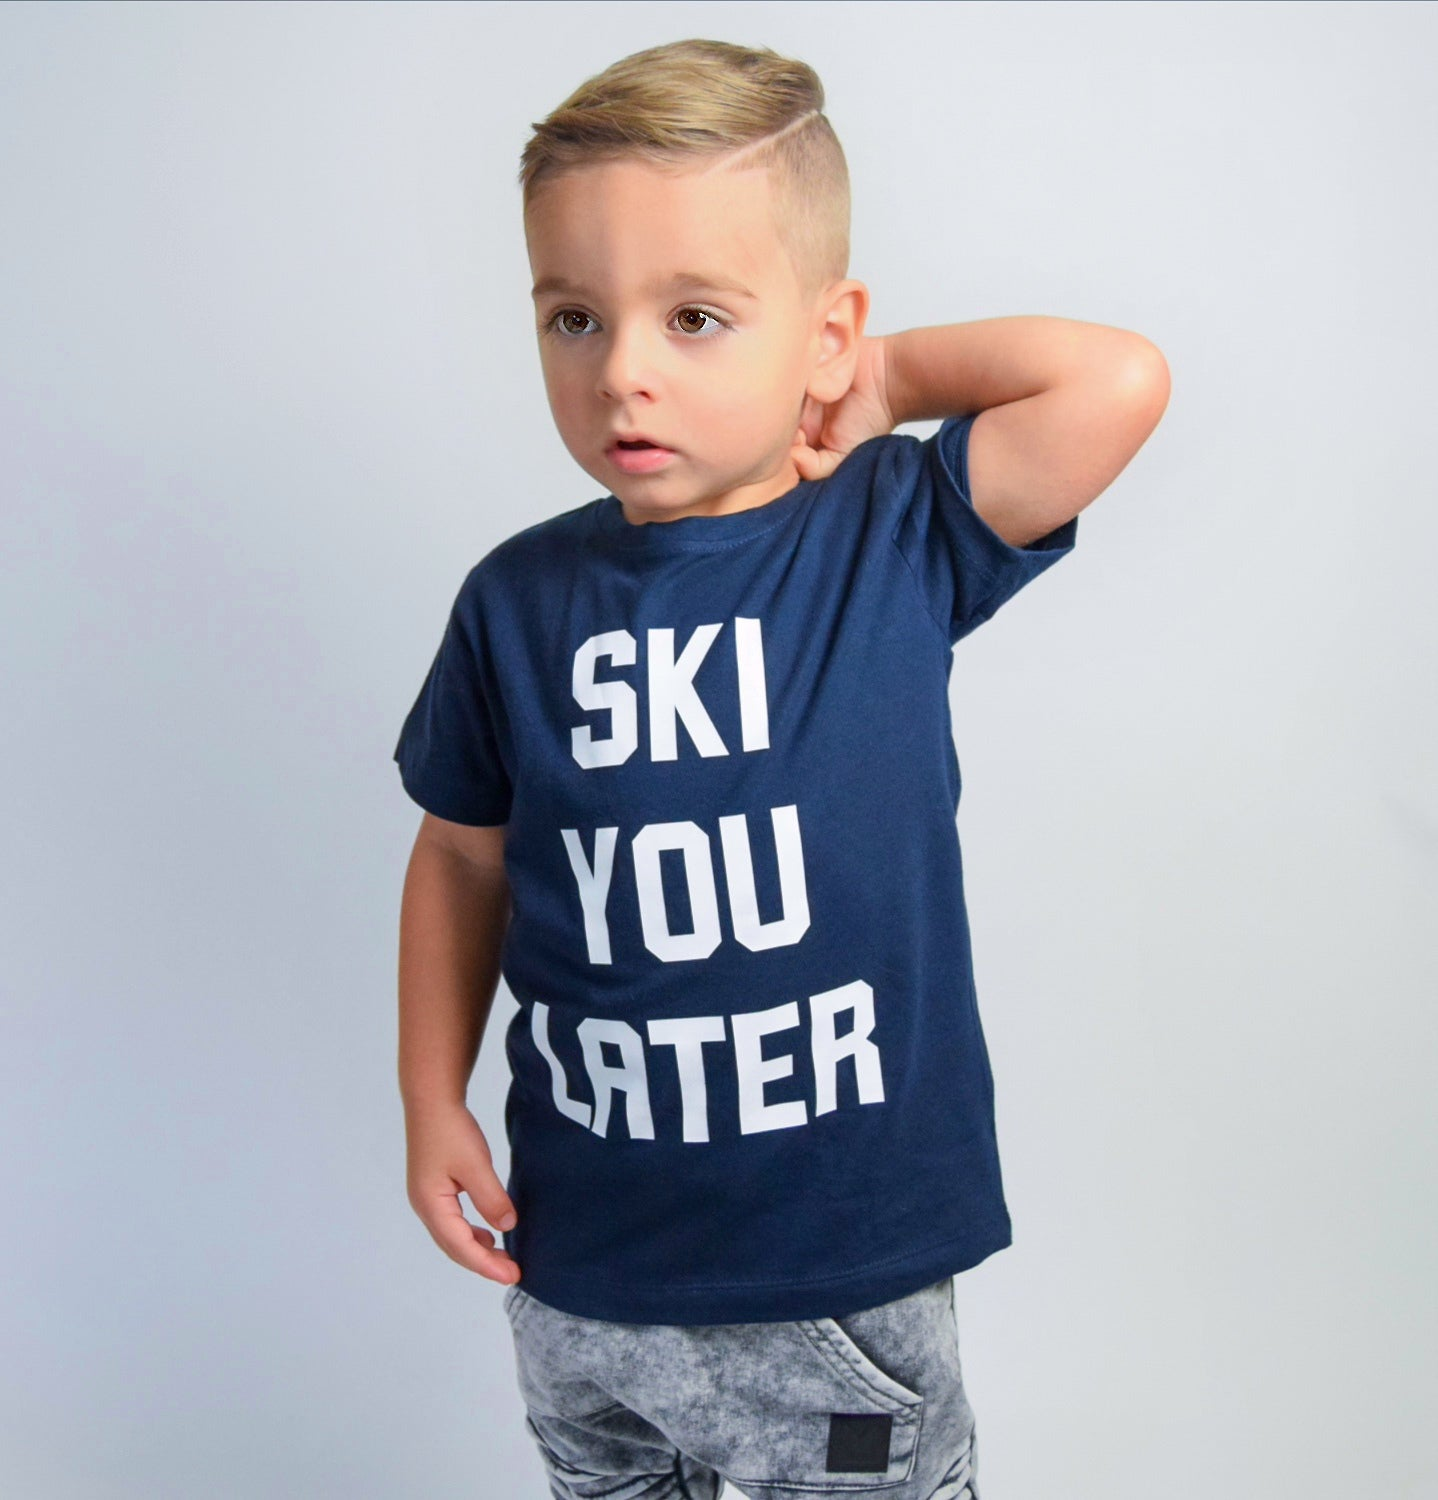 'Ski you later' kids shortsleeve shirt